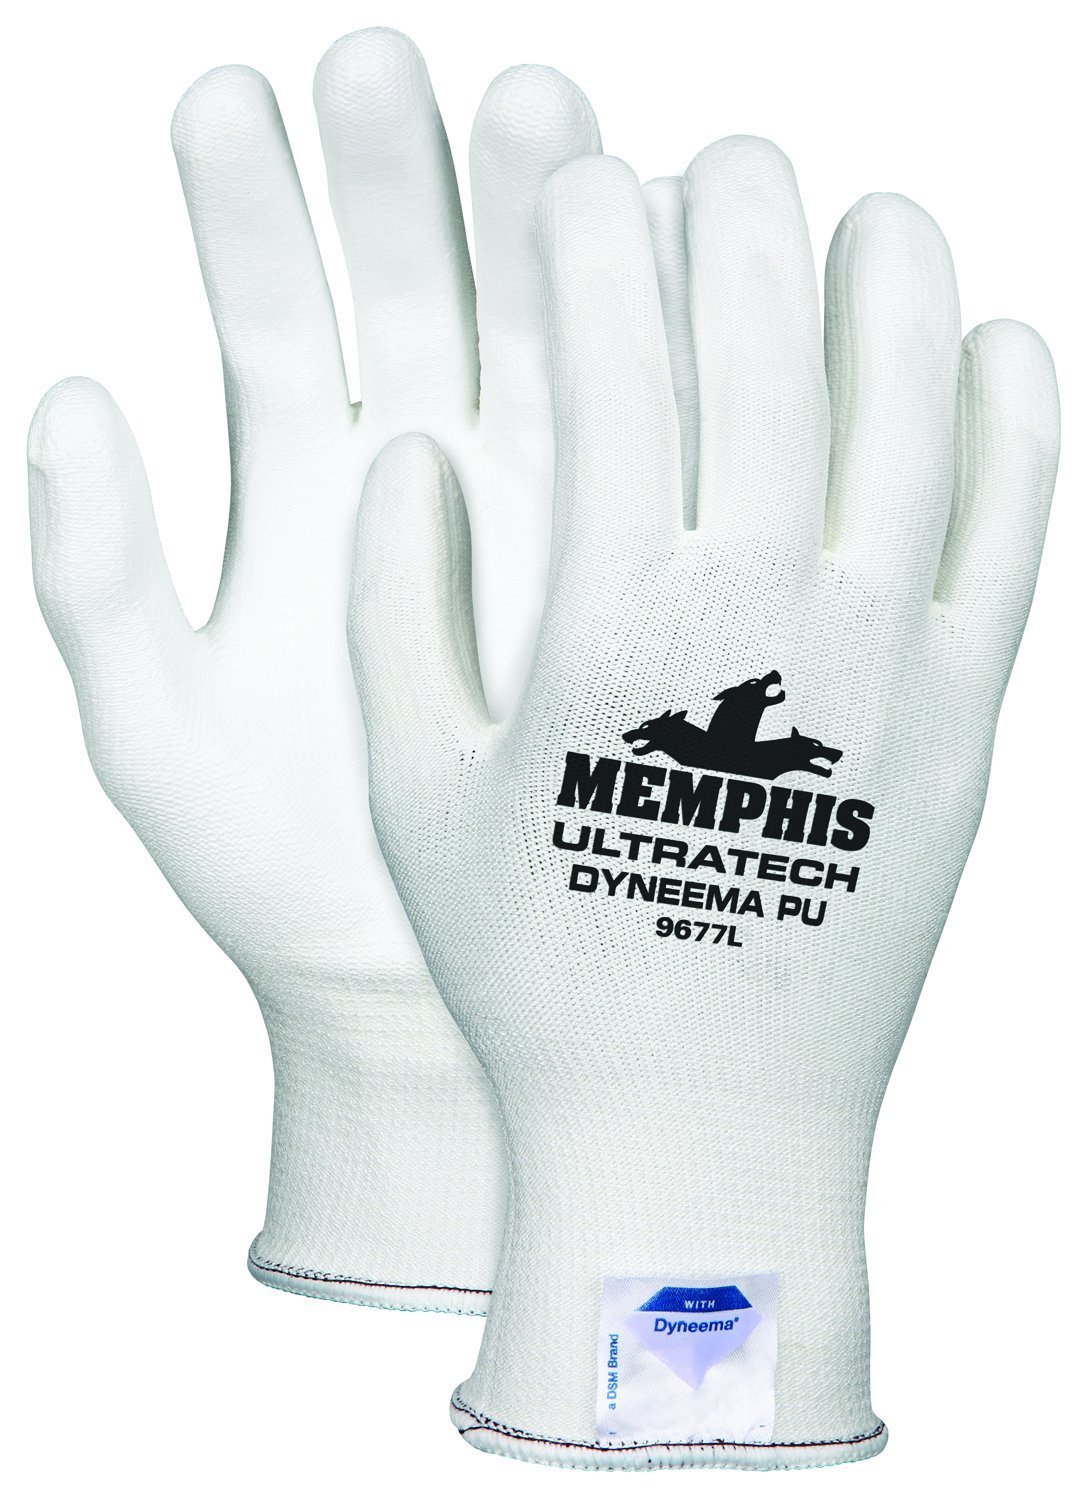 Memphis Glove 9677XL UltraTech Dyneema 13-gauge PU Coating Washable Gloves, White, X-Large, 1-Pair